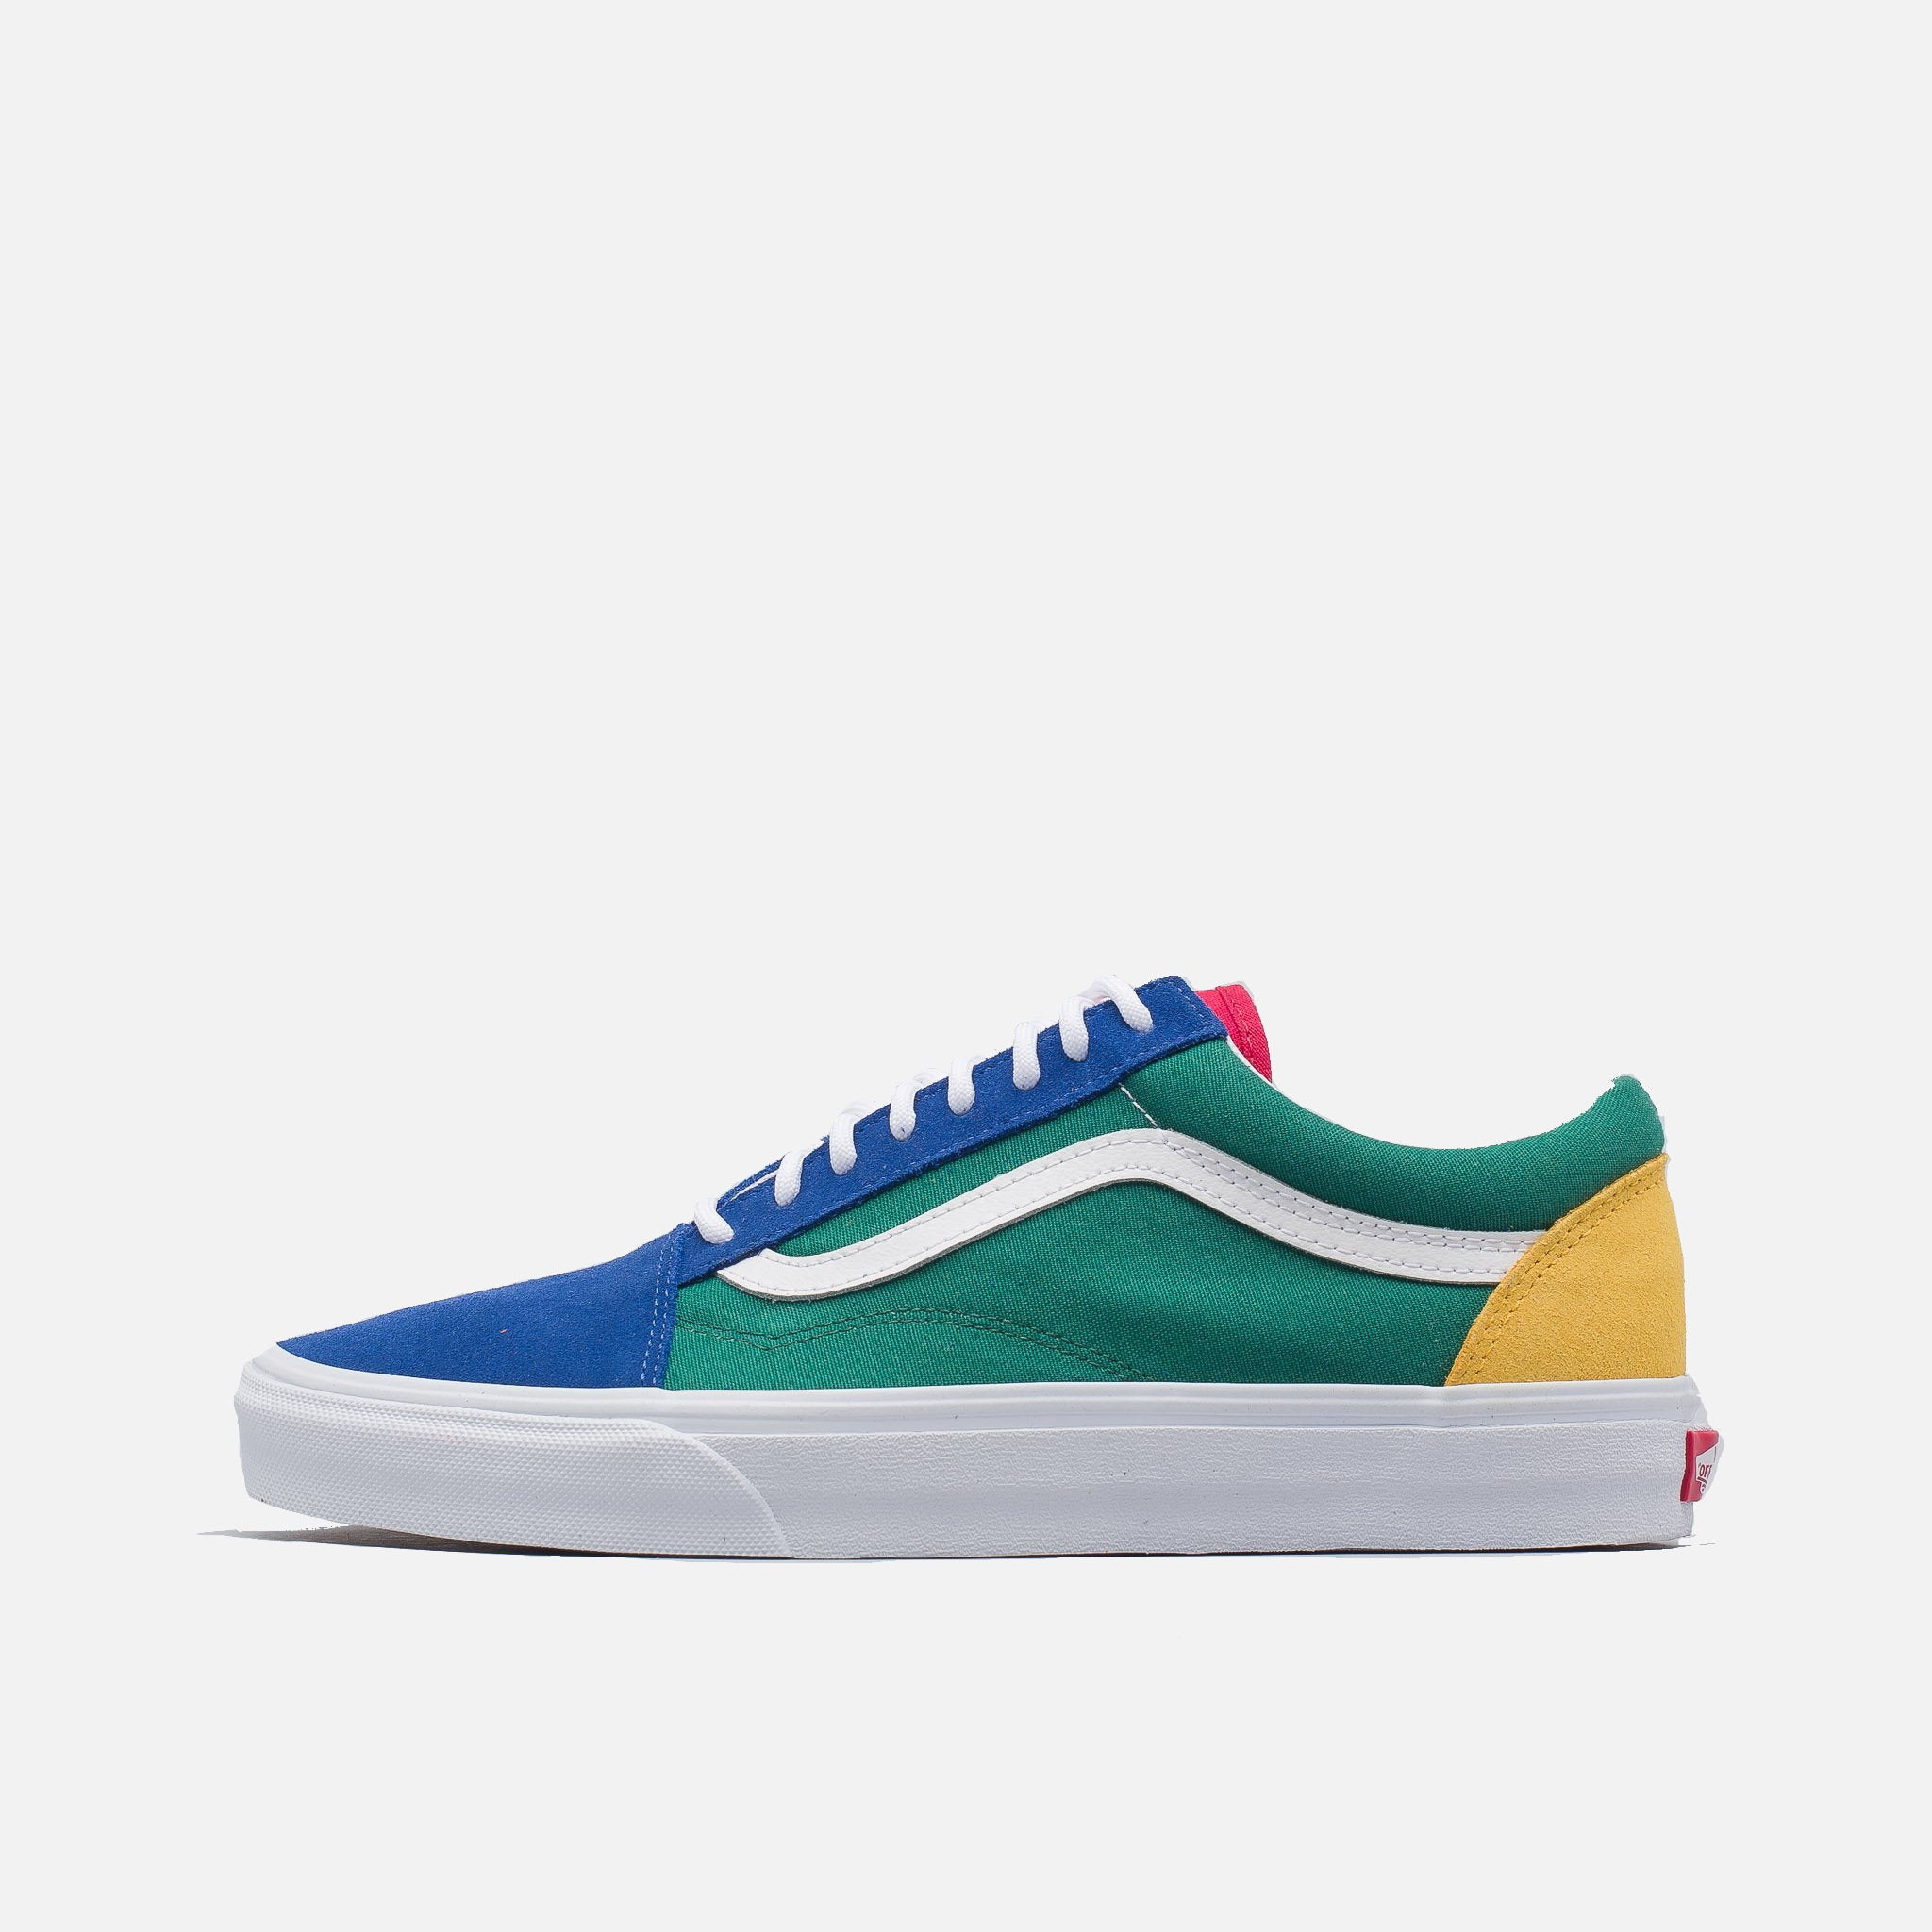 447ee2a87089 Yacht Club Old Skool in Blue Green Yellow – PZOZO